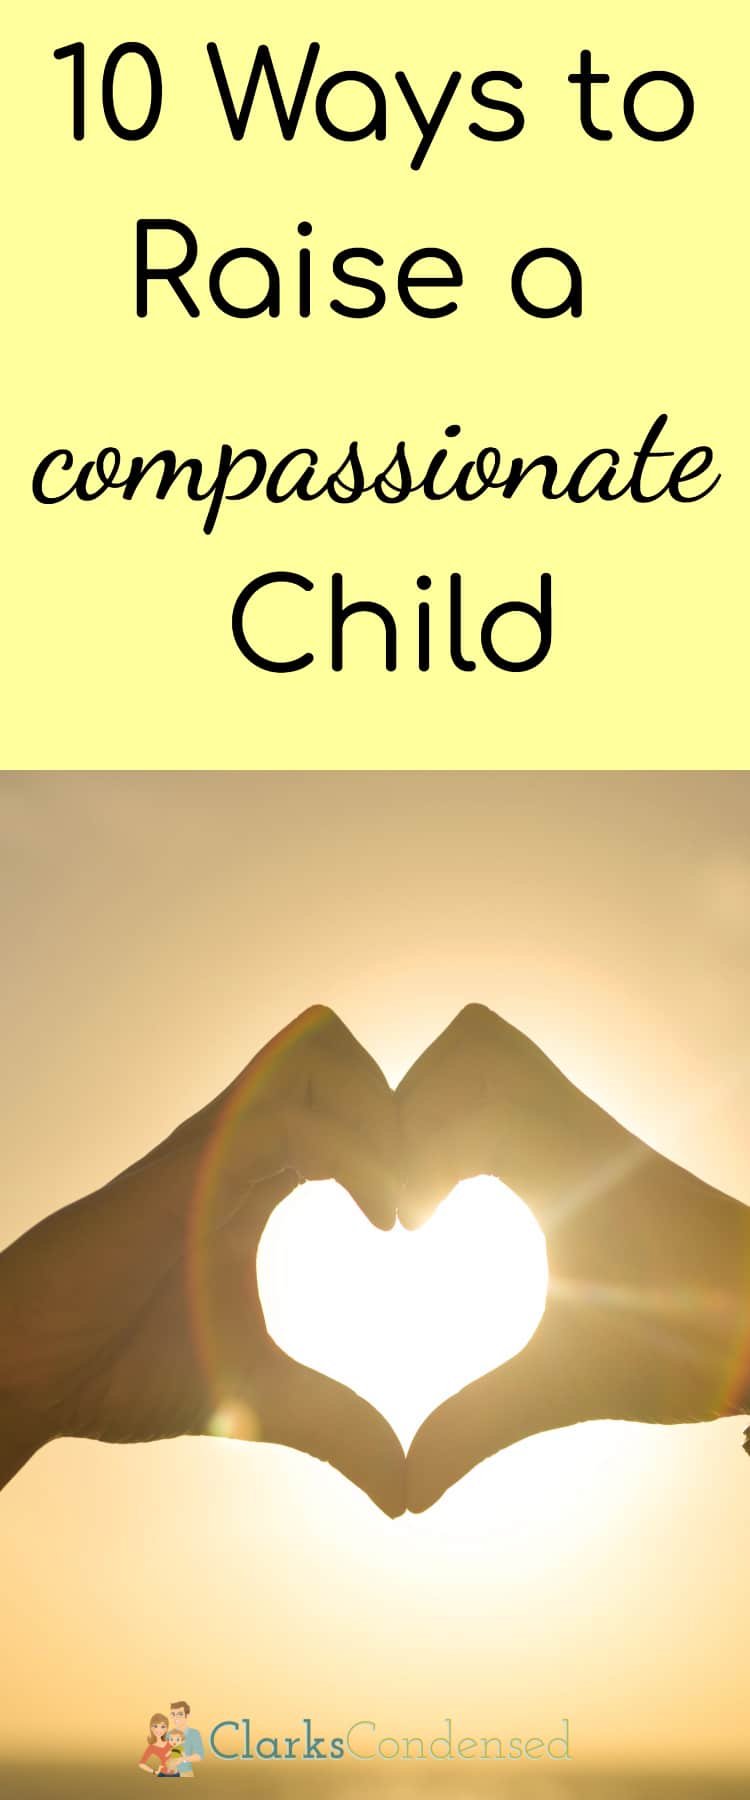 10 Ways to Raise a Compassionate Child / Compassion / Parenting / School via @clarkscondensed